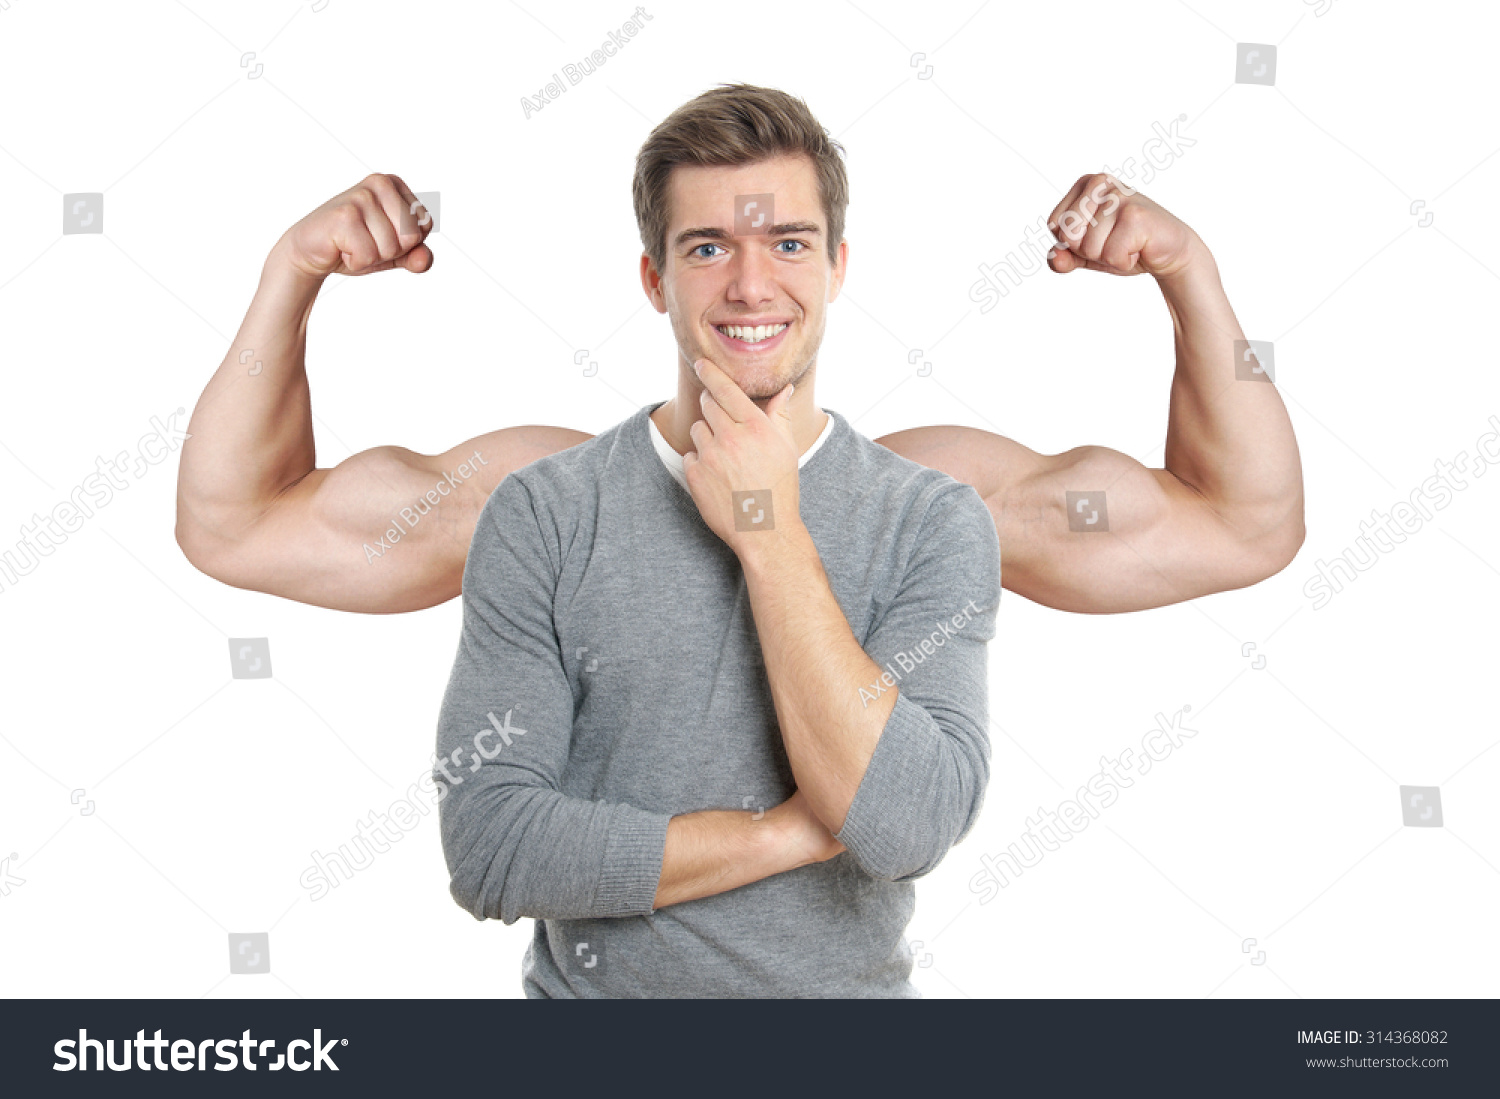 Happy Young Man Superimposed Muscular Arms Stock Photo Edit Now